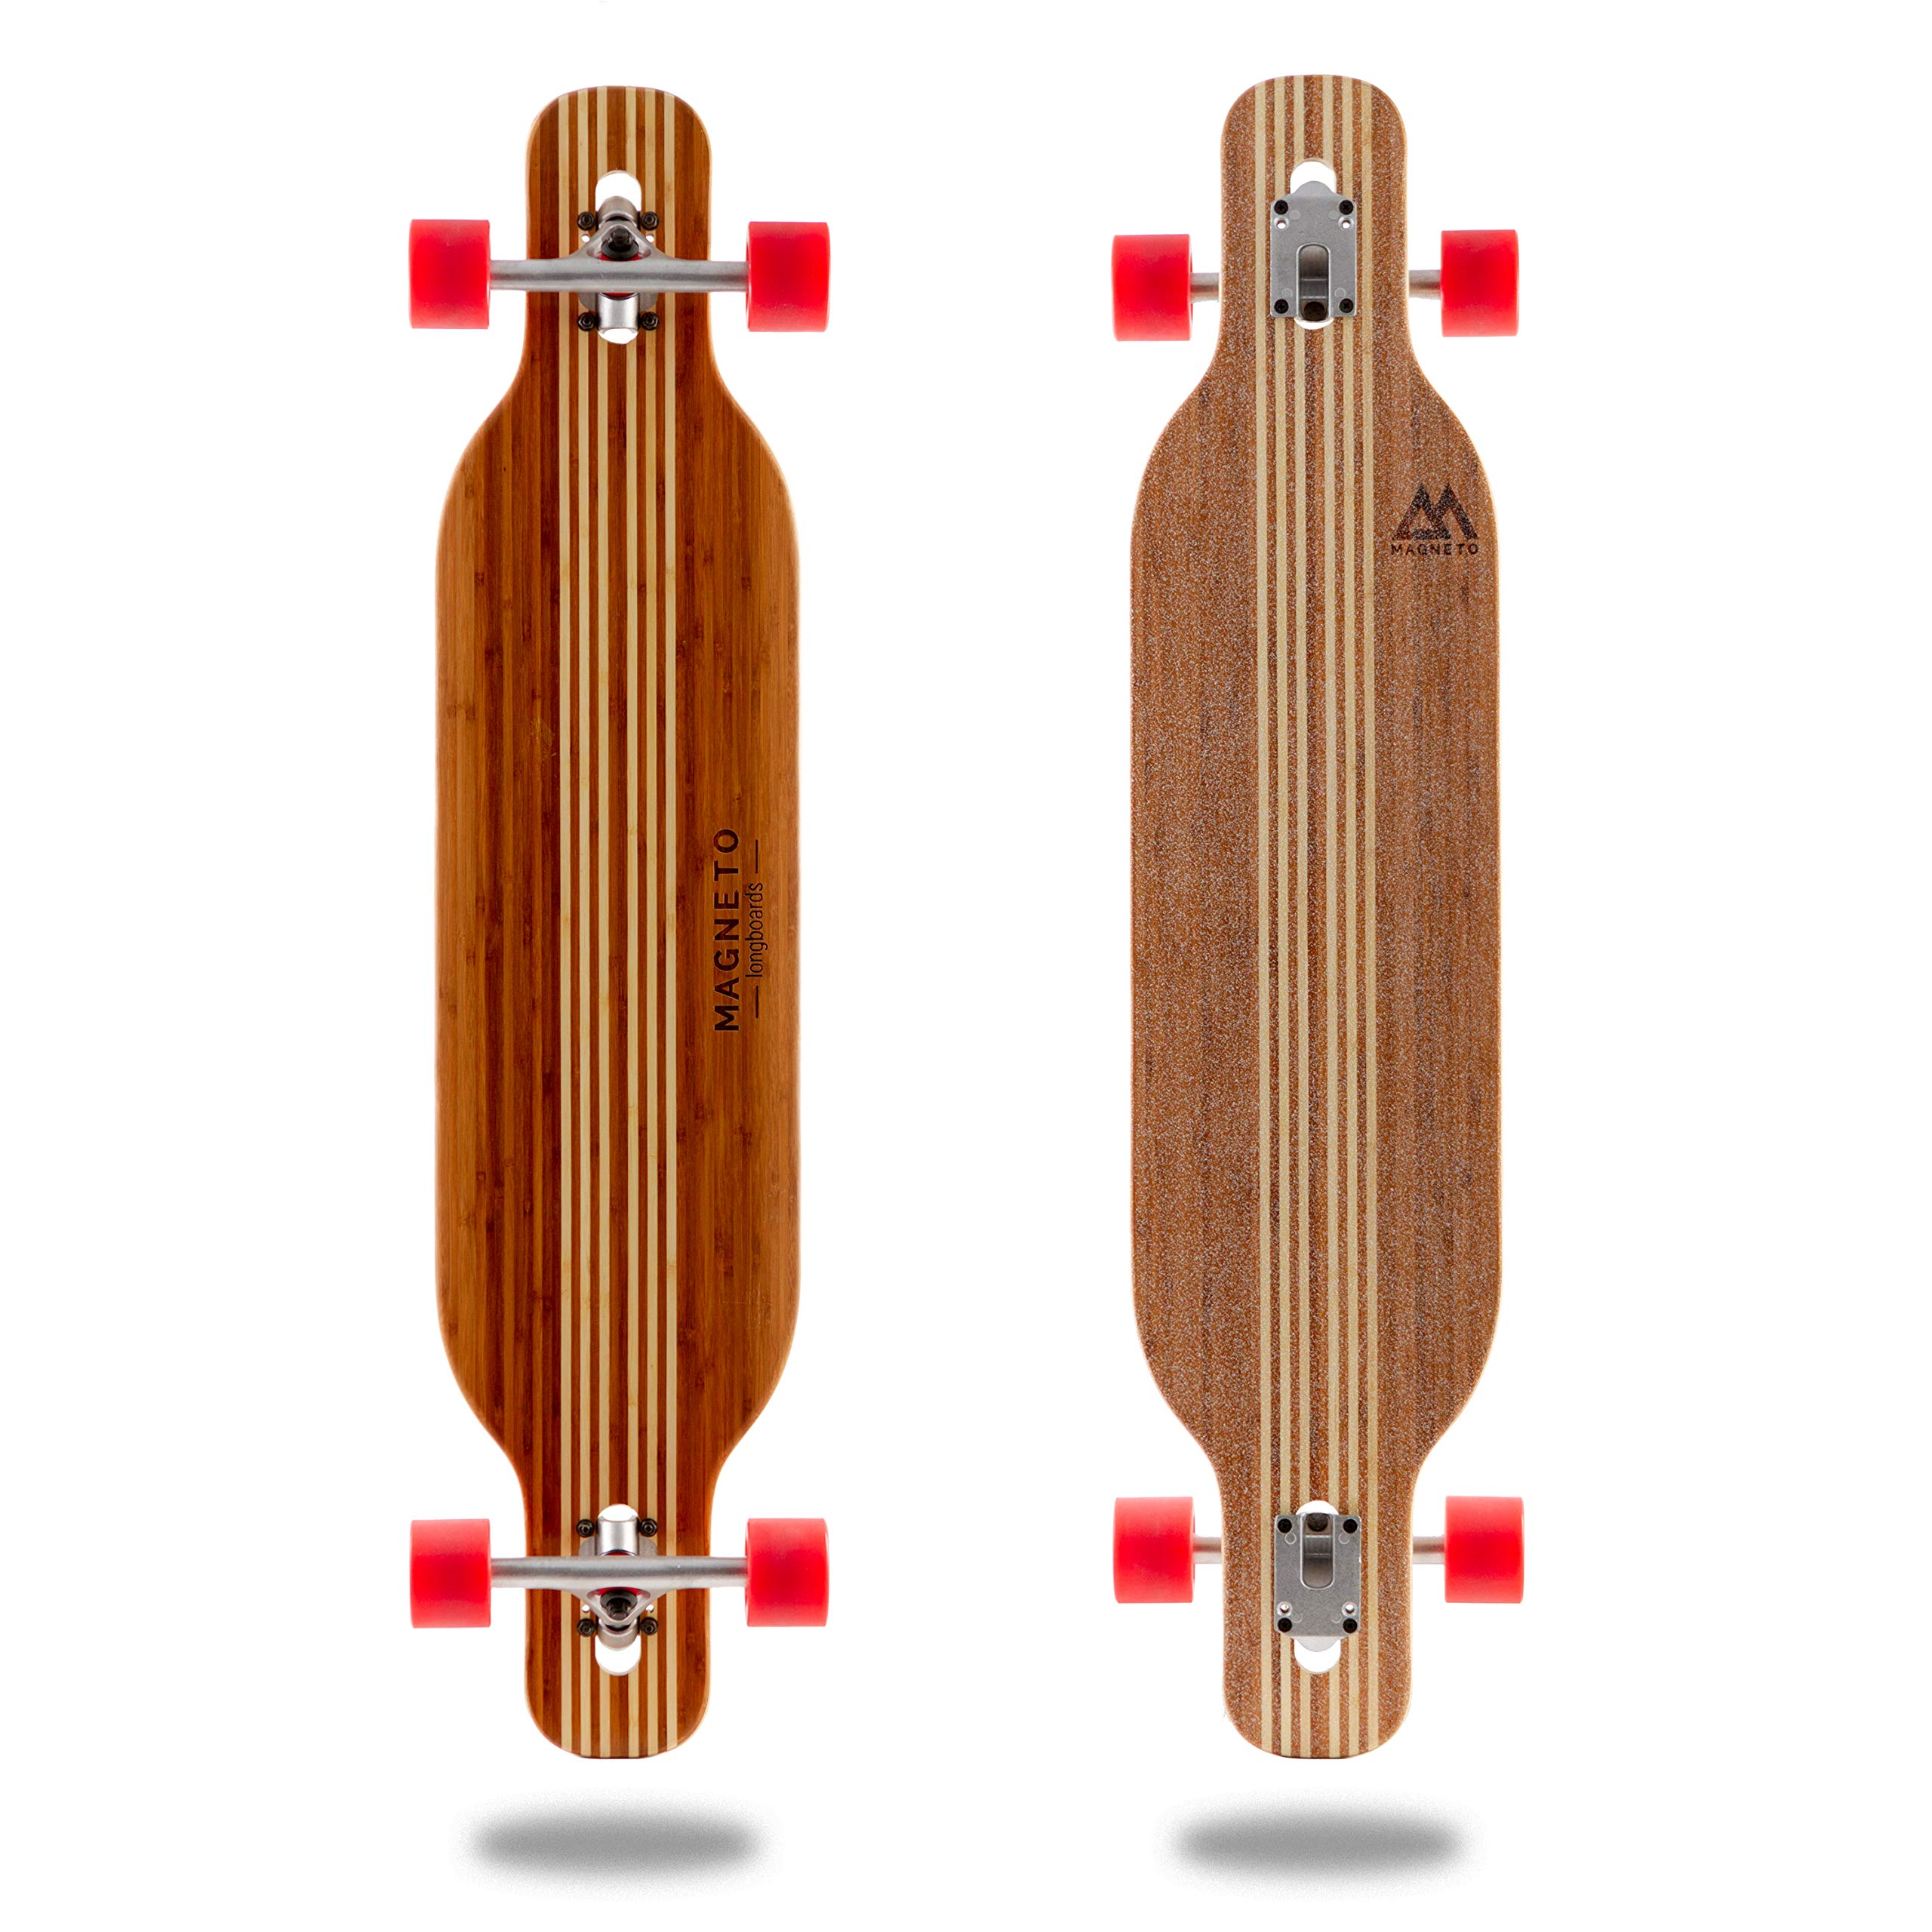 Hana Longboard Collection | 42 inch Longboard Skateboards | Bamboo with Hard Maple Core | Cruising, Carving, Dancing, Freestyle (Twin)